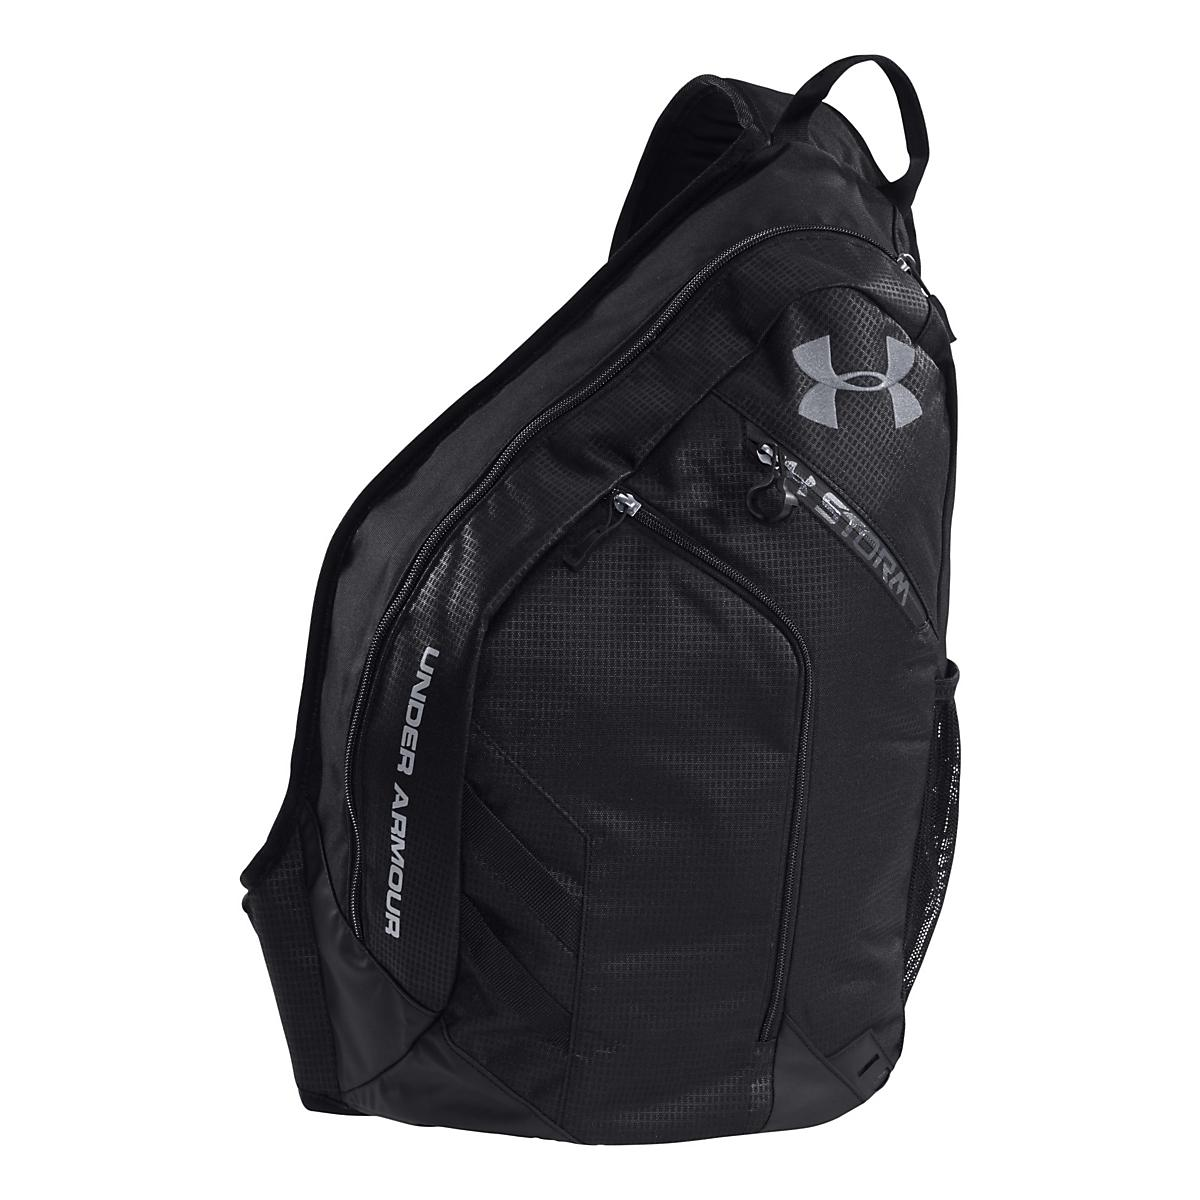 Under Armour�Compel Sling Bag